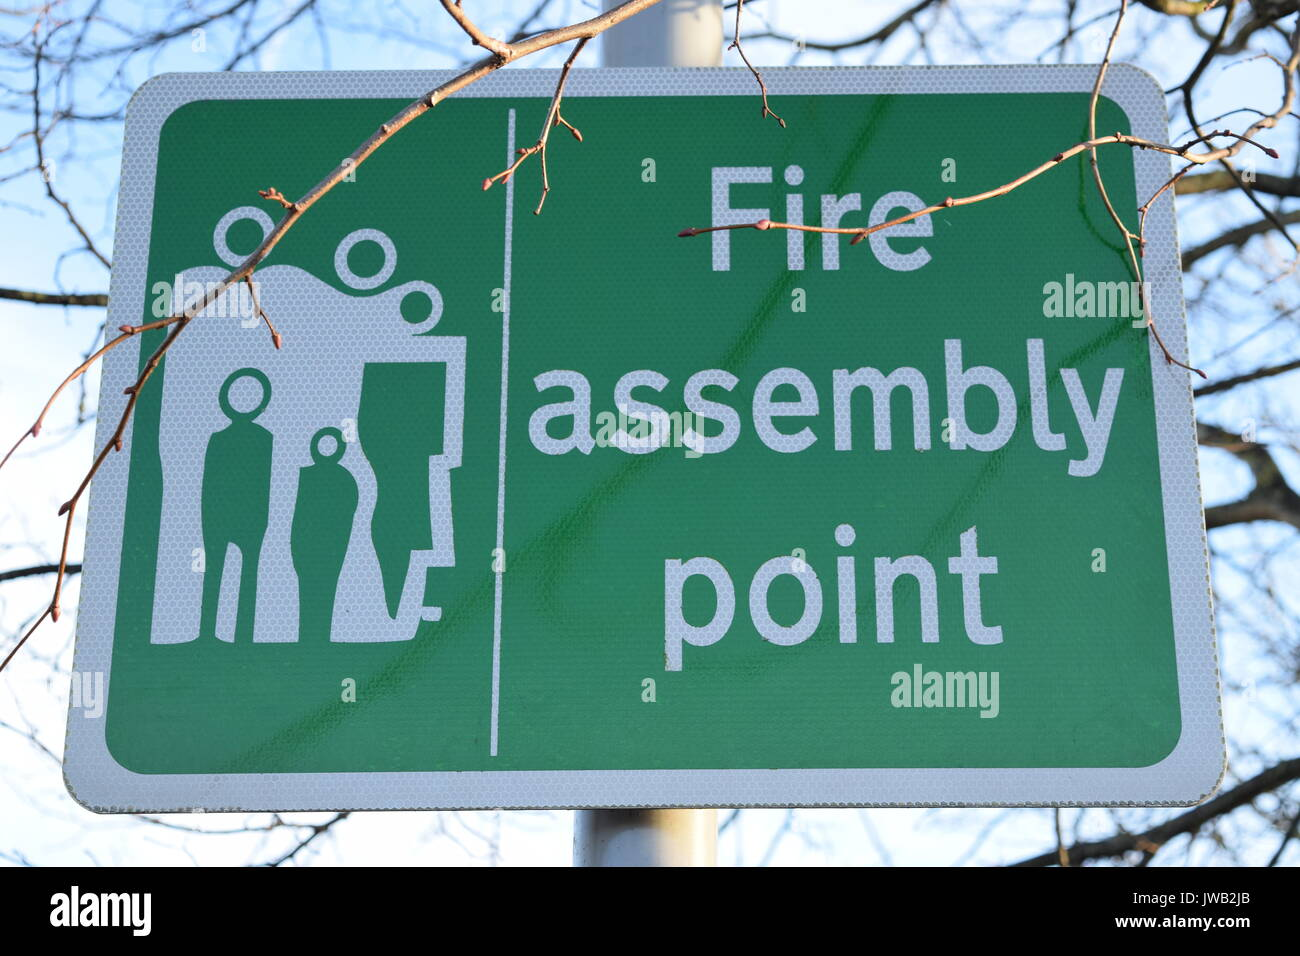 Fire assembly point sign - Stock Image